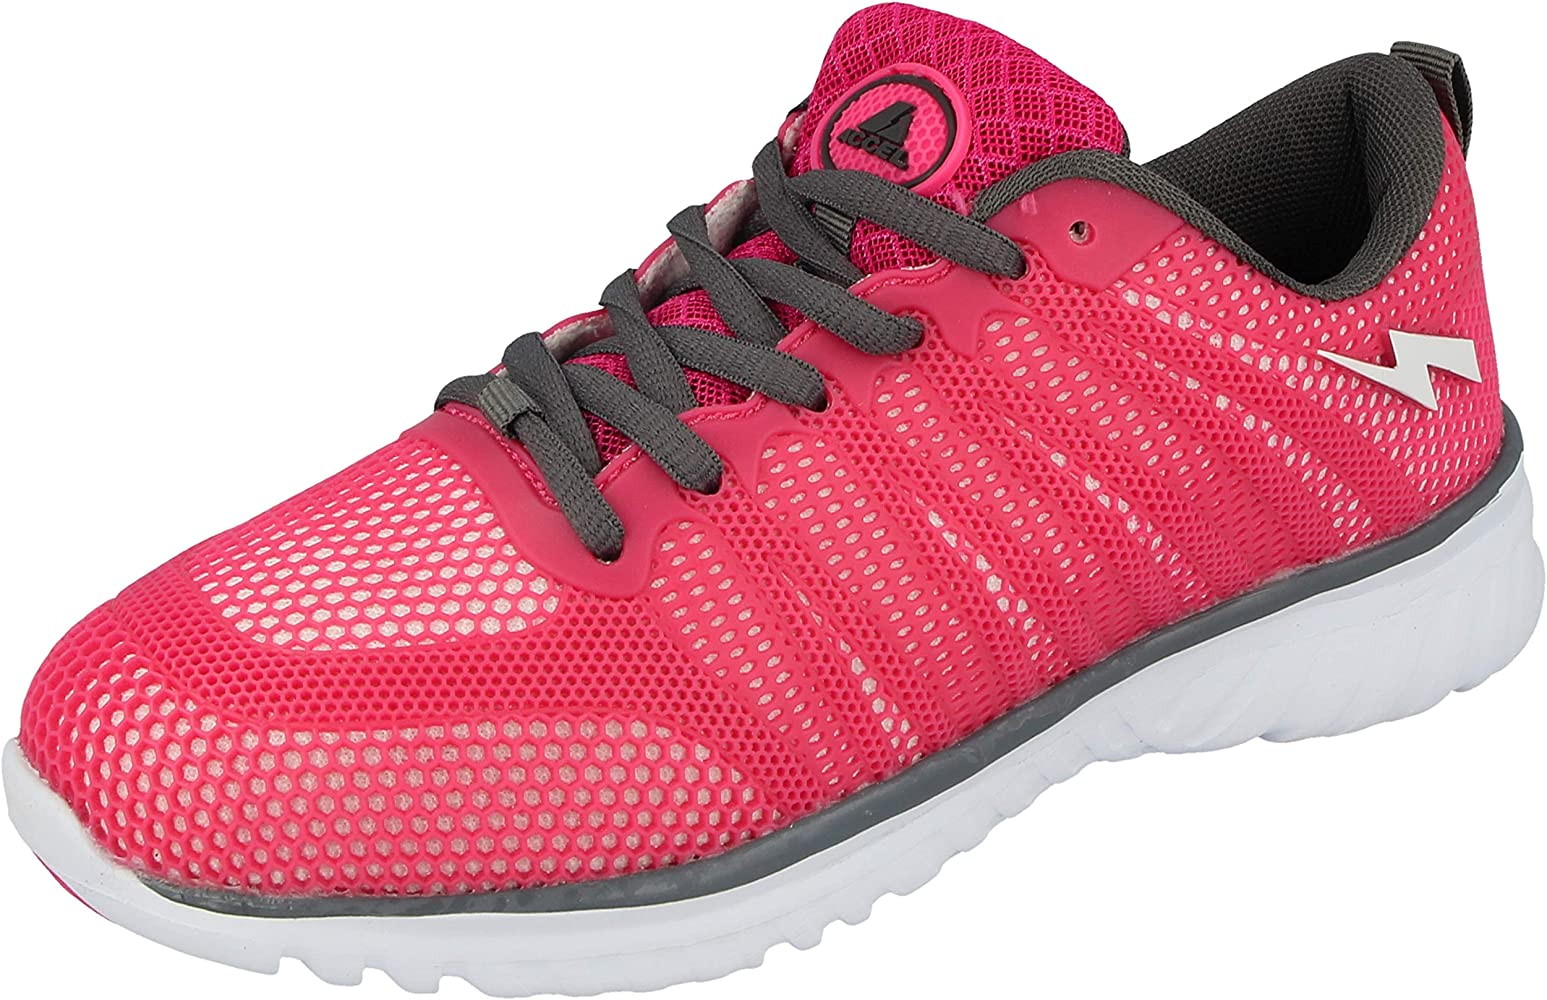 WOMENS WHITE PINK LACE UP RUNNING SPORTS GYM TRAINERS SHOES LADIES UK SIZE 3-8